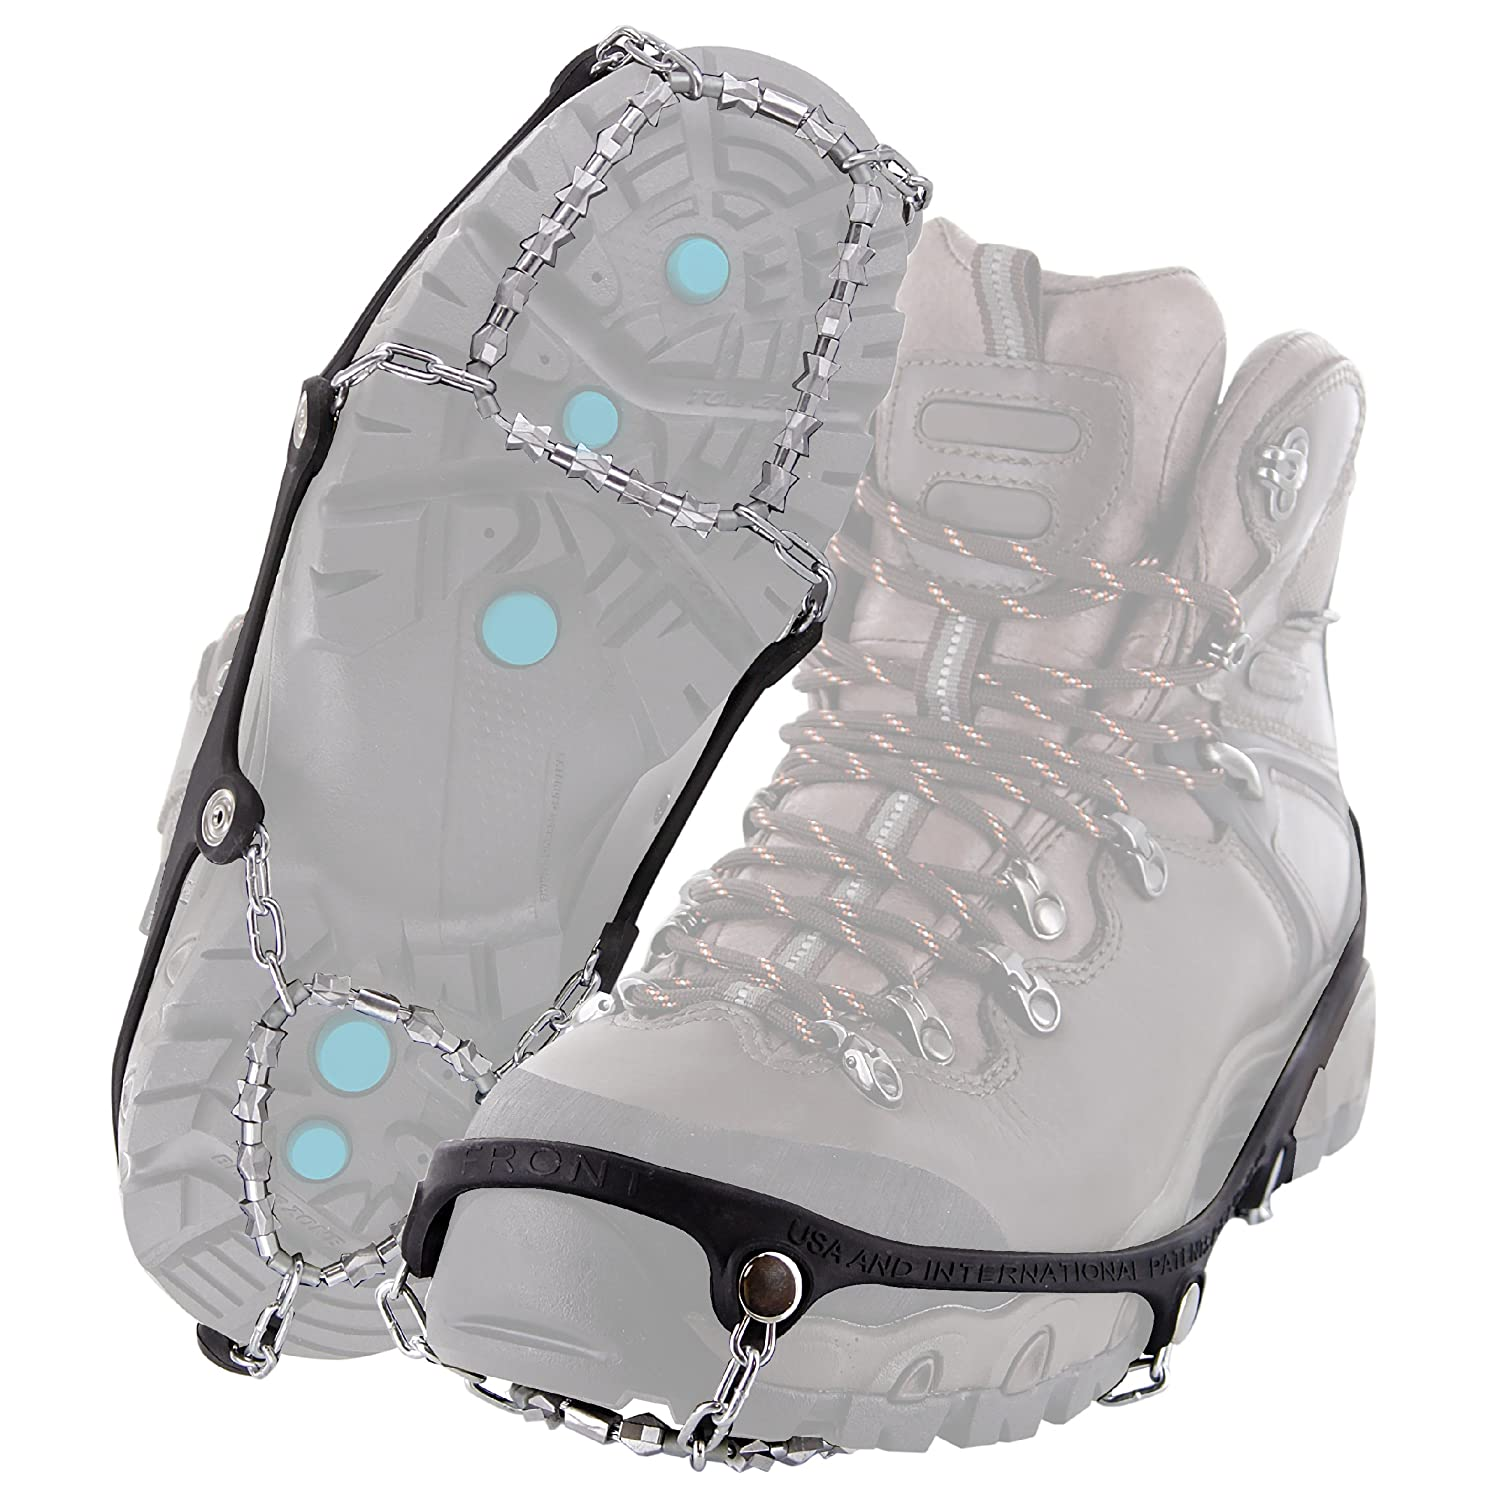 Yaktrax Diamond Grip All Surface Traction Cleats for Walking on Ice and Snow